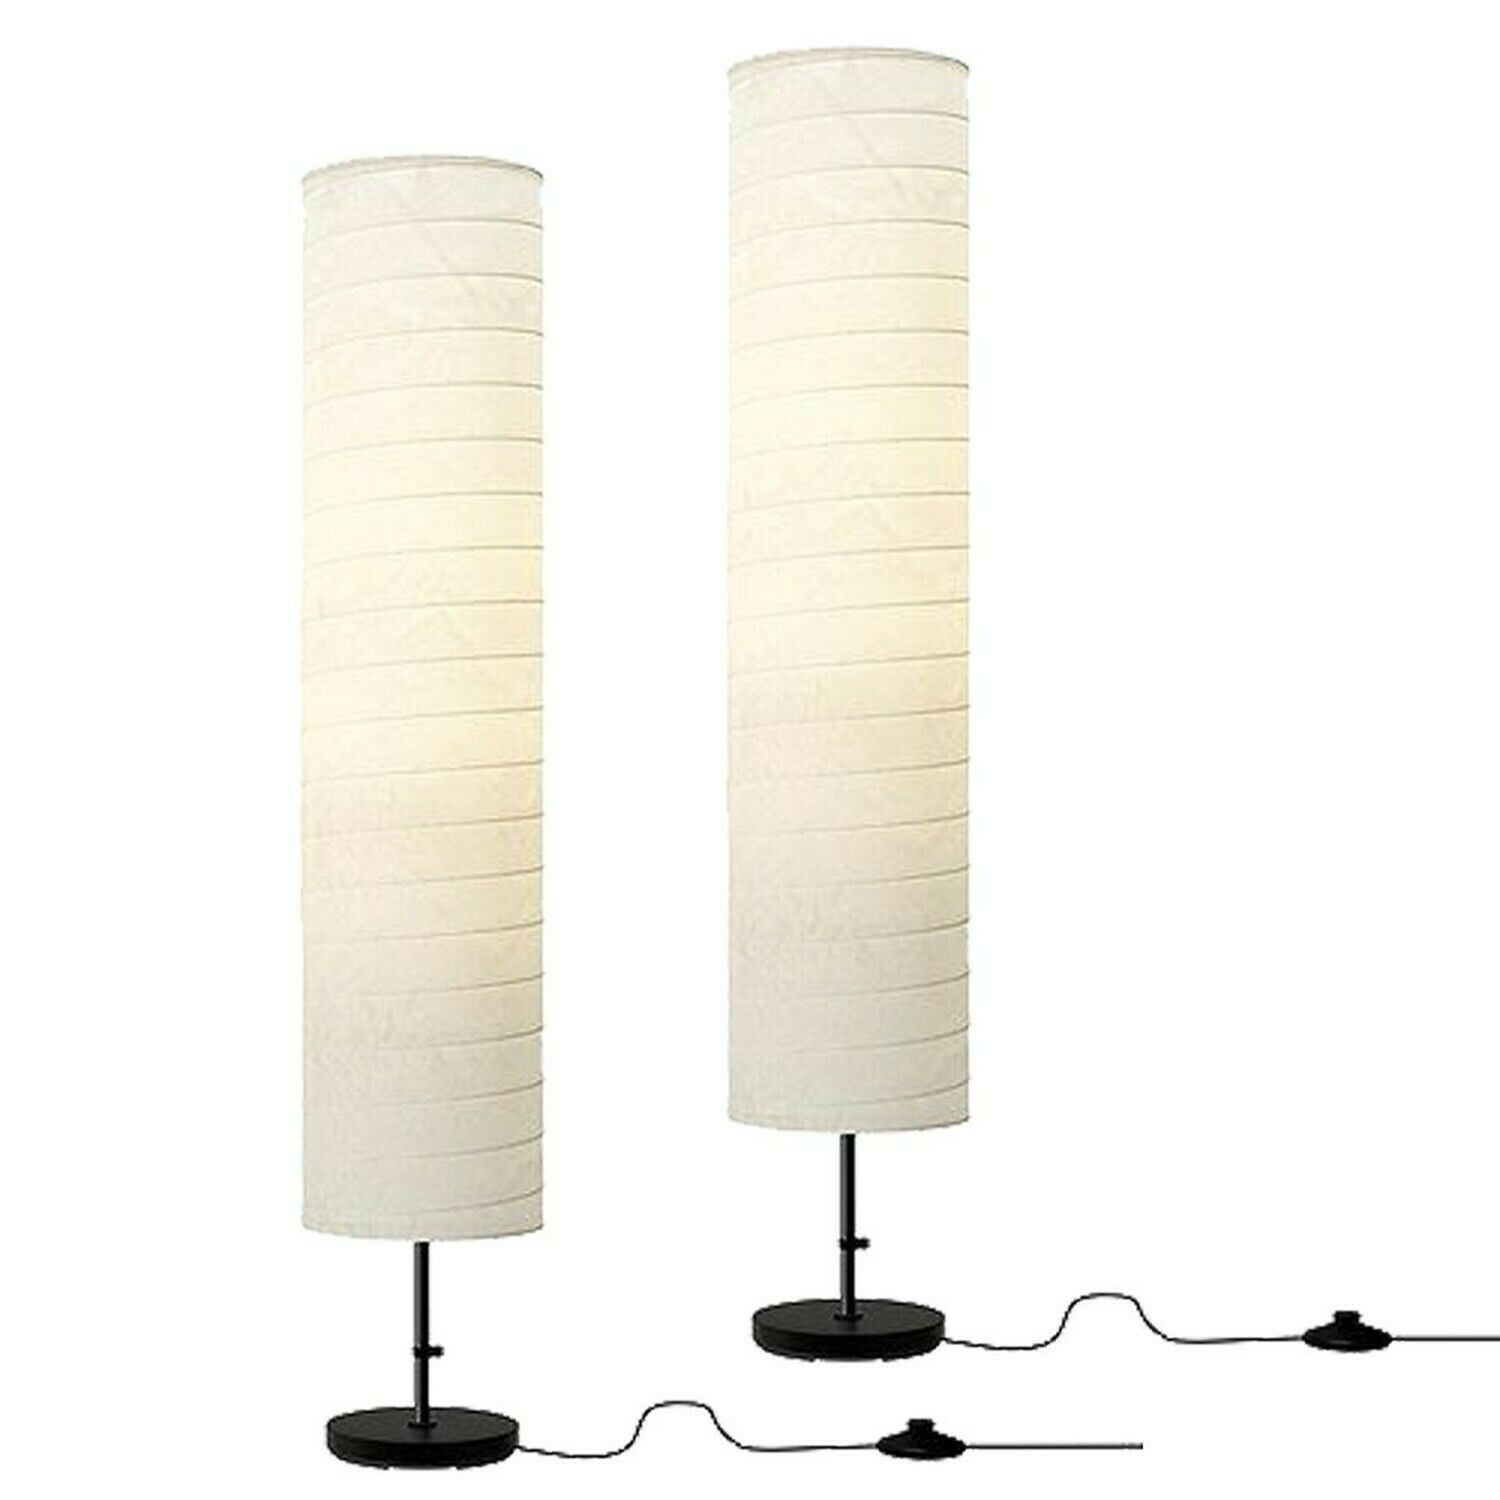 Ikea Regolit Floor Lamp Arc White For